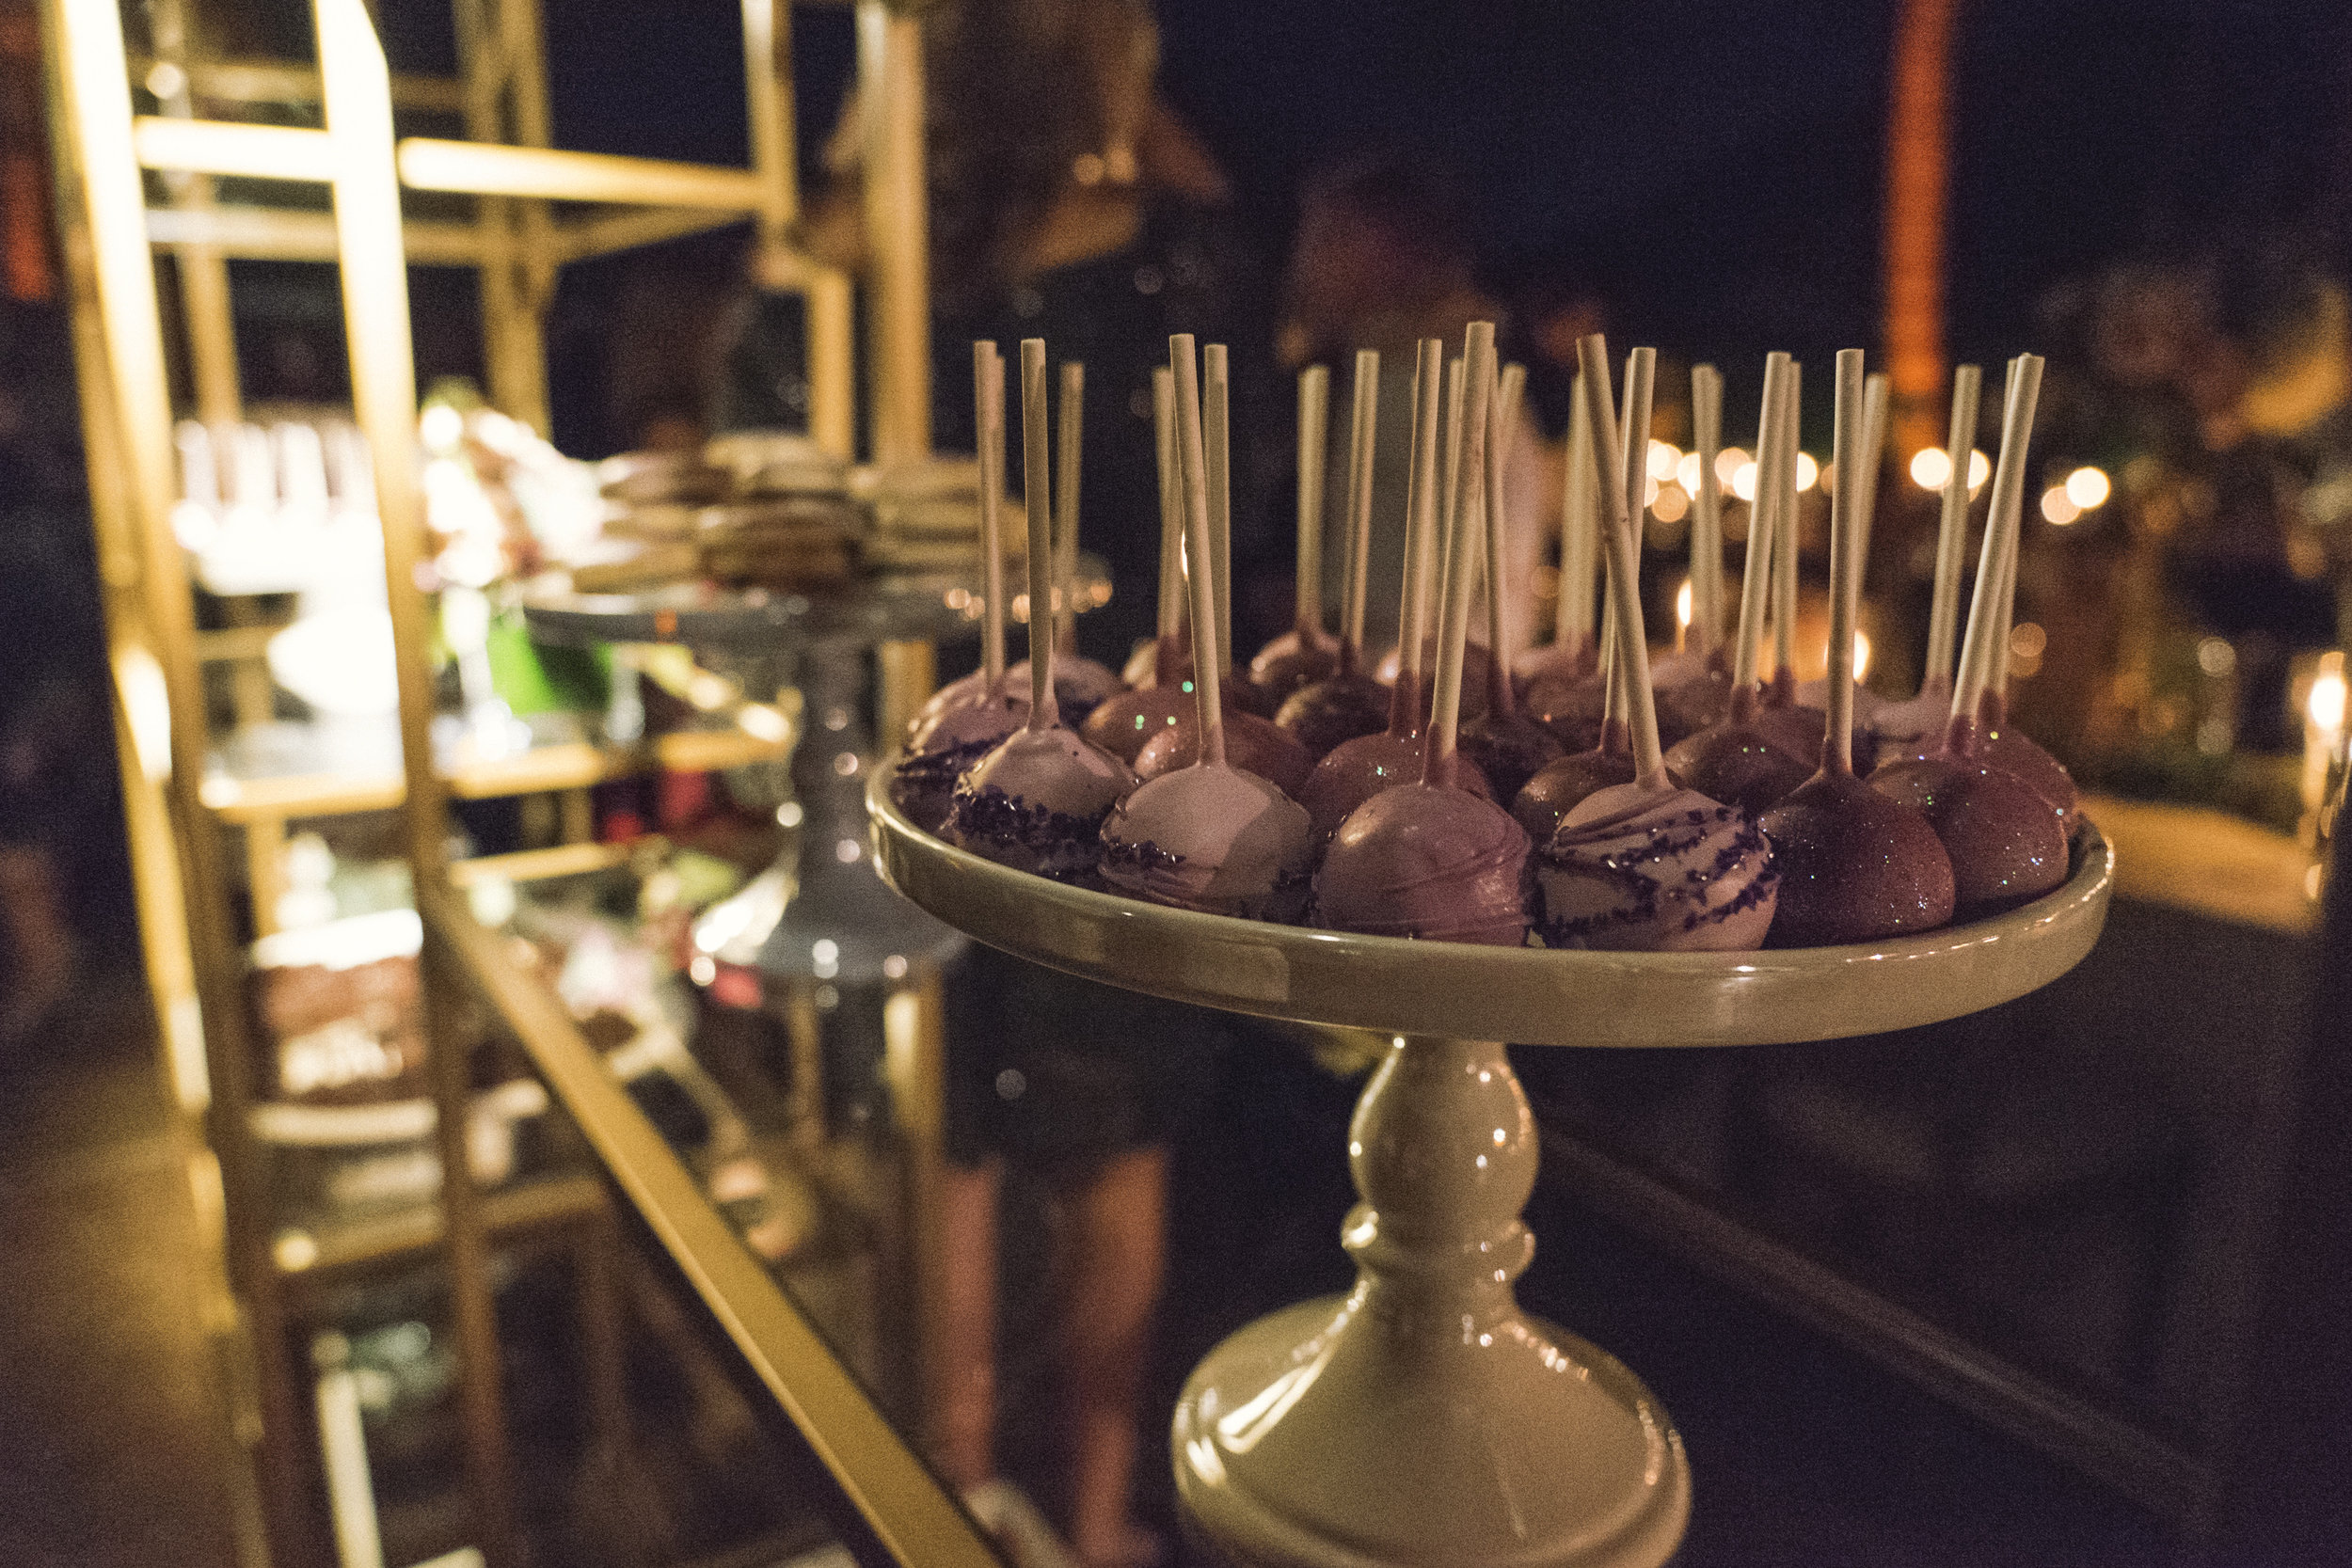 20 purple cake pops dessert bar birthday party Life Design Events photos by Keith and Melissa Photography.jpg